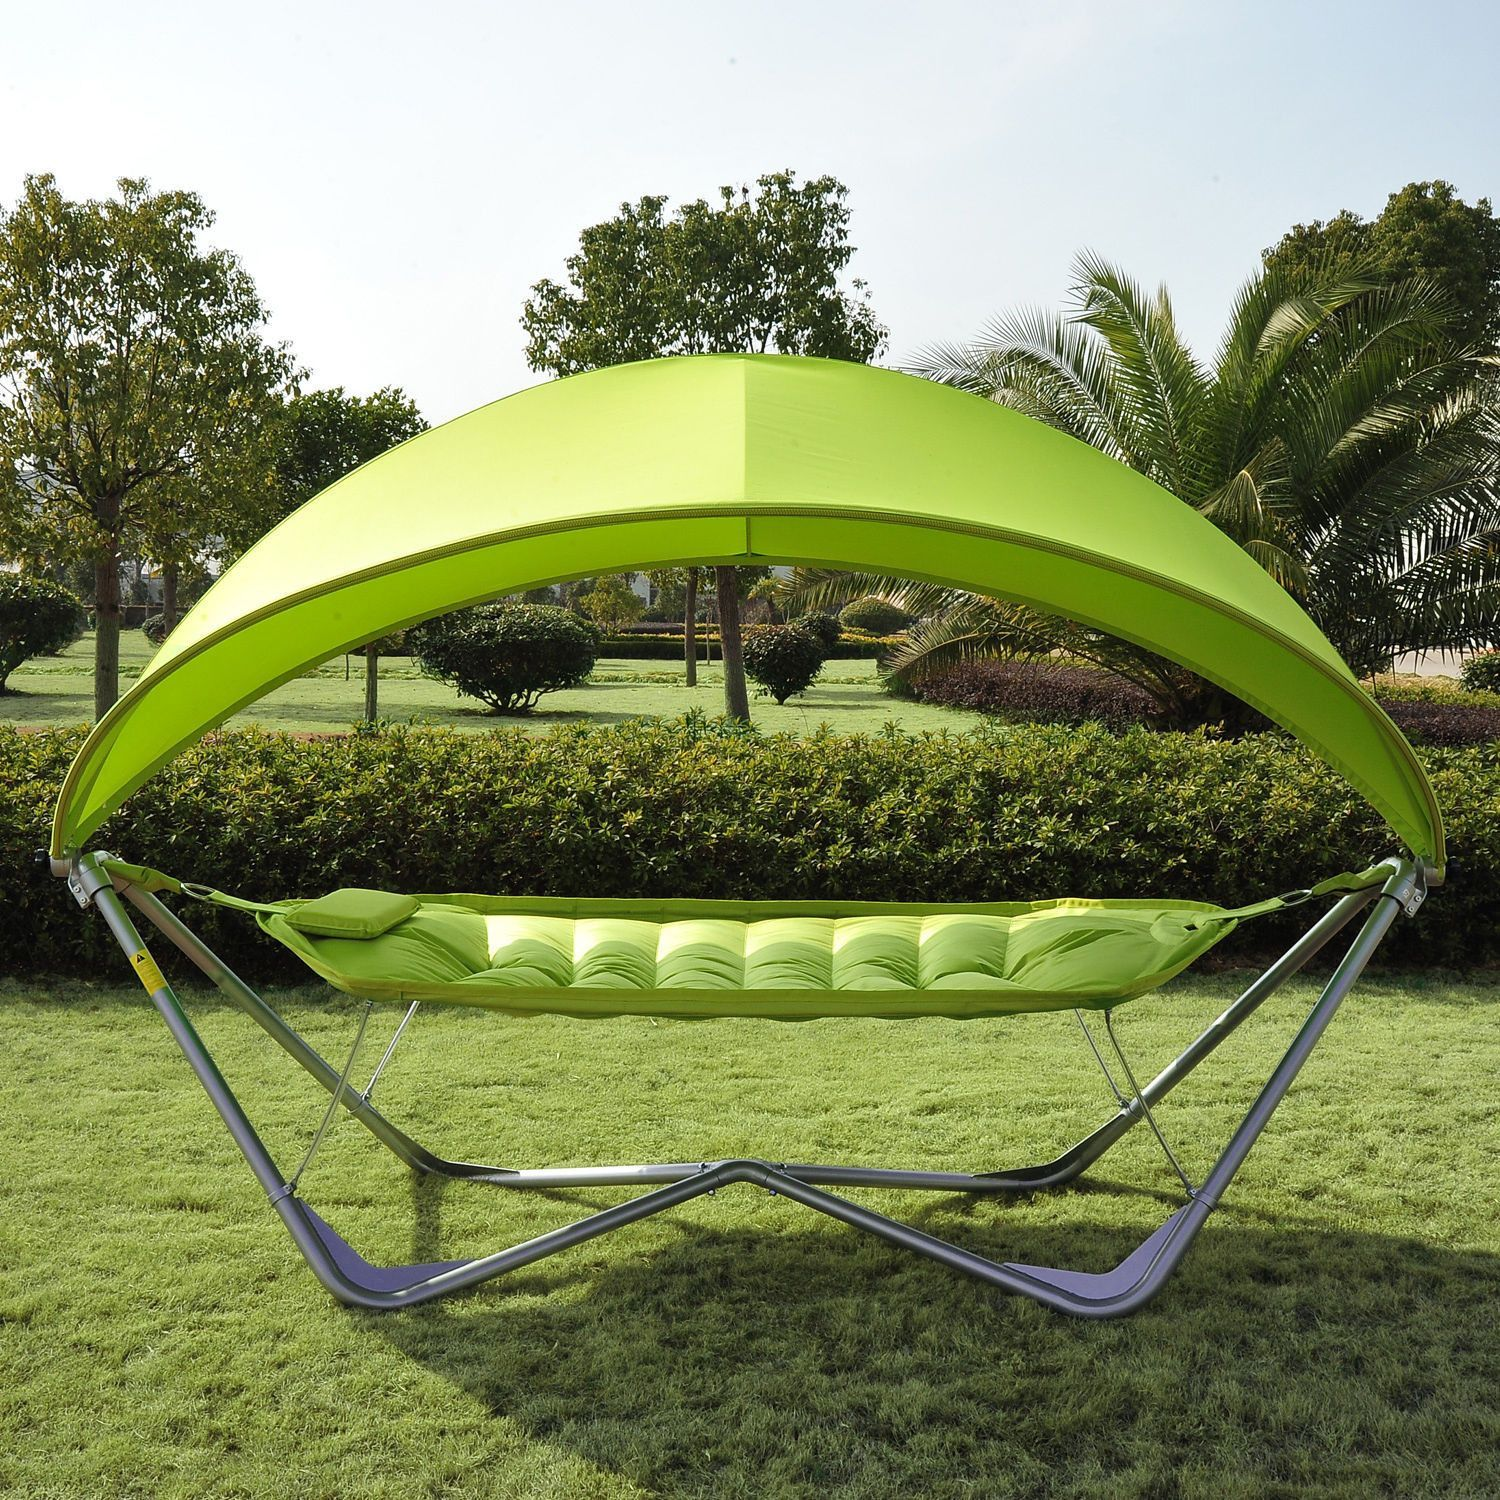 Outdoor hammock bed with cover - Outdoor Single Hammock Canopy Stand Patio Bed Portable Swing Camping Yard Poolside Lemon Green